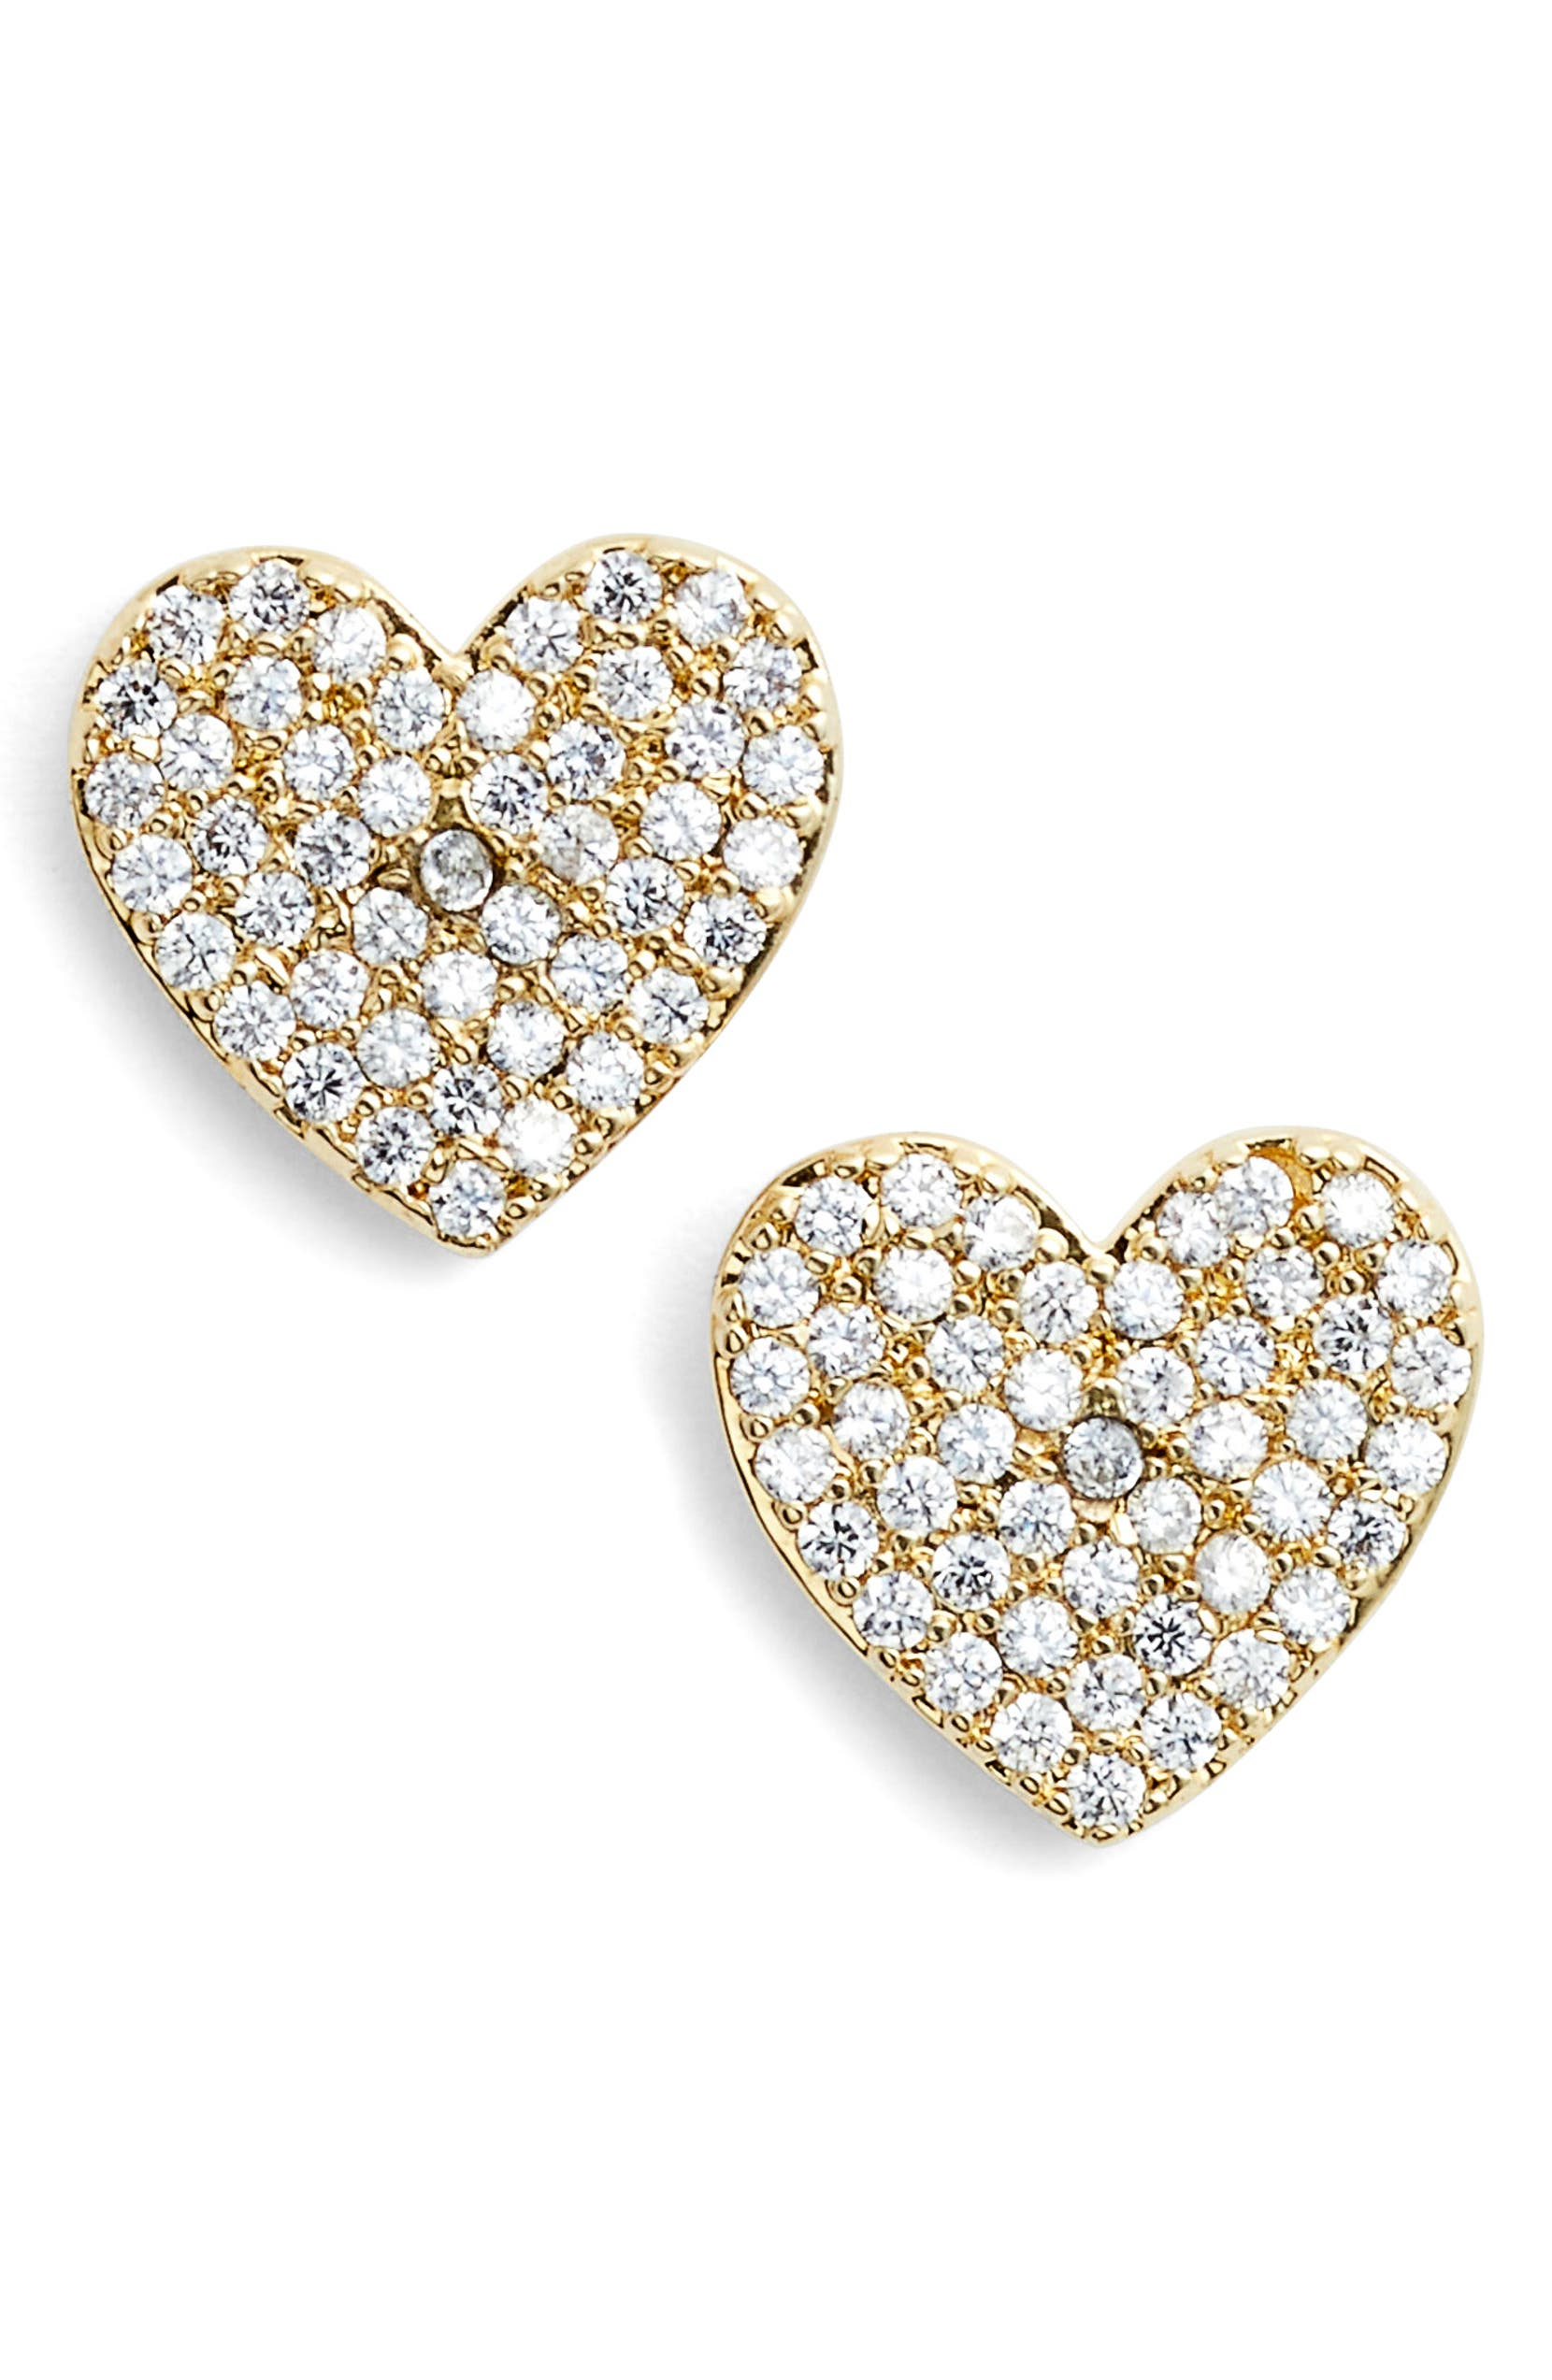 229328e8f891c yours truly pave heart stud earrings